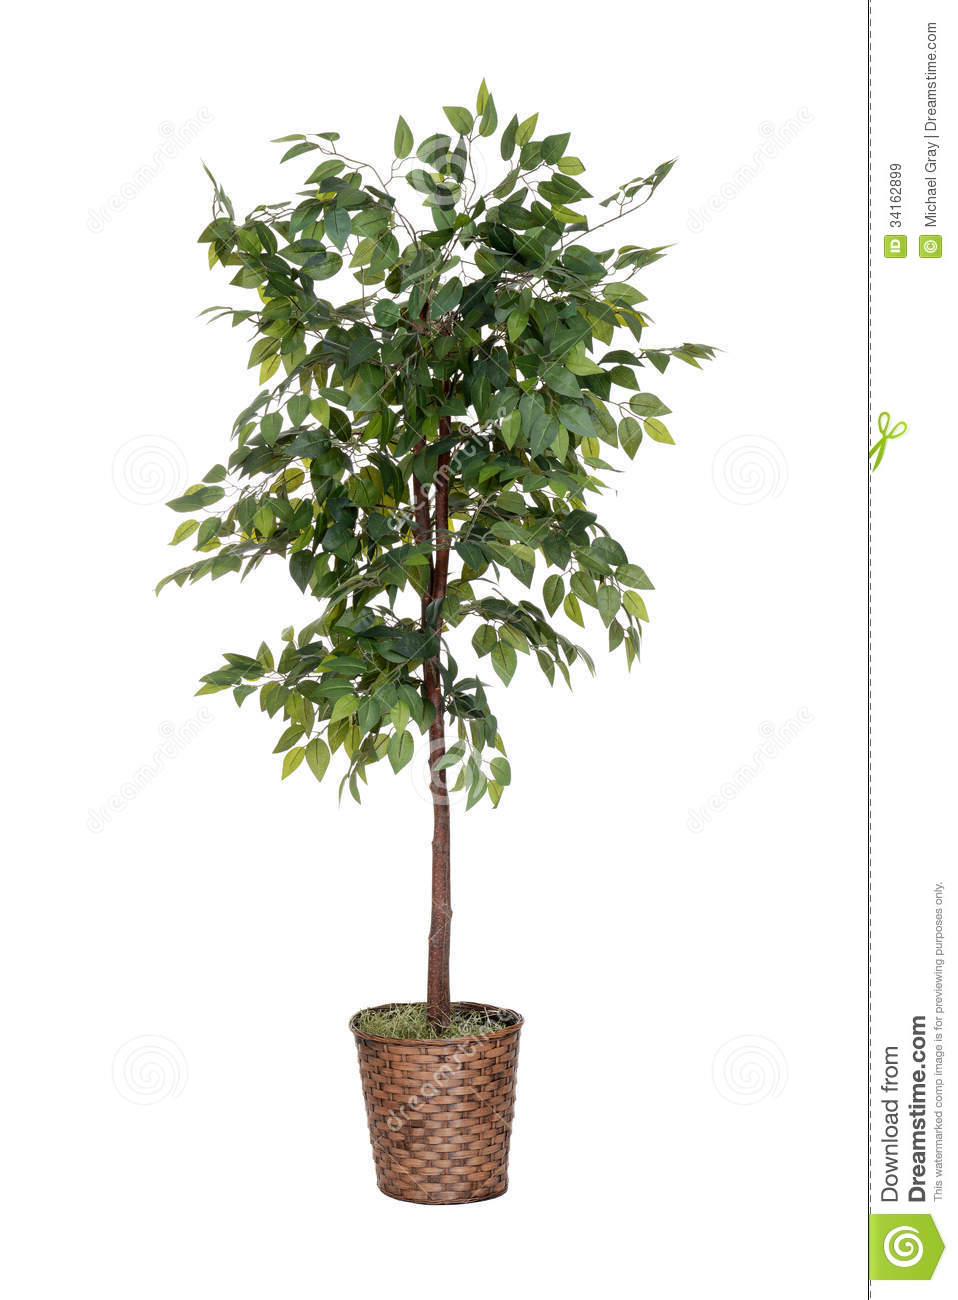 Isolated Fake Tree Royalty Free Stock Images - Image: 34162899